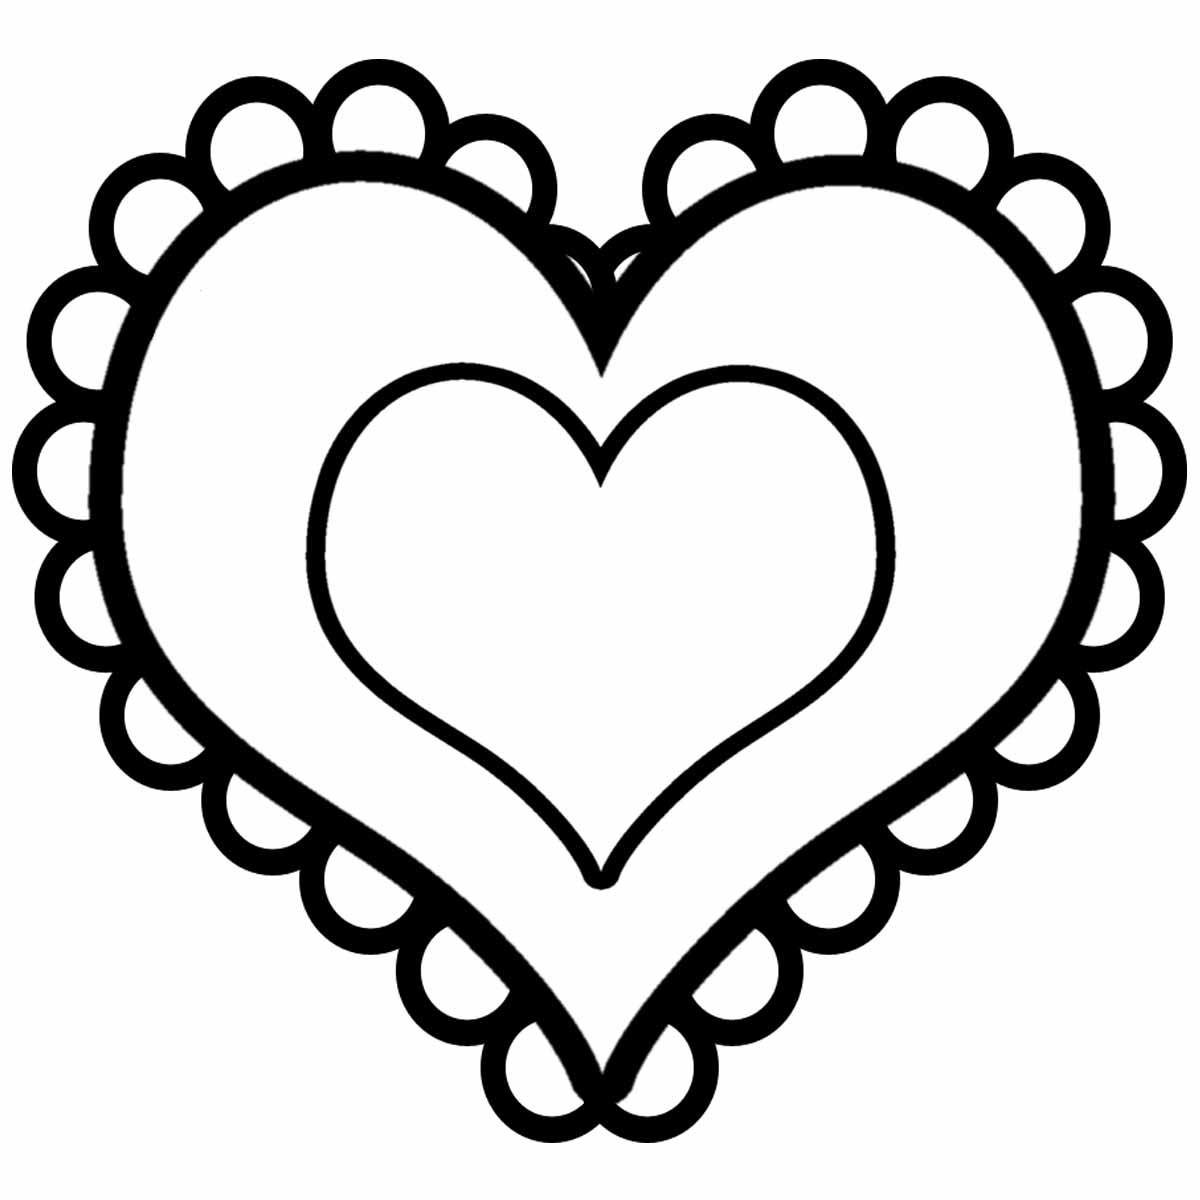 Pink Heart Outline Clipart   Clipart Panda   Free Clipart Images